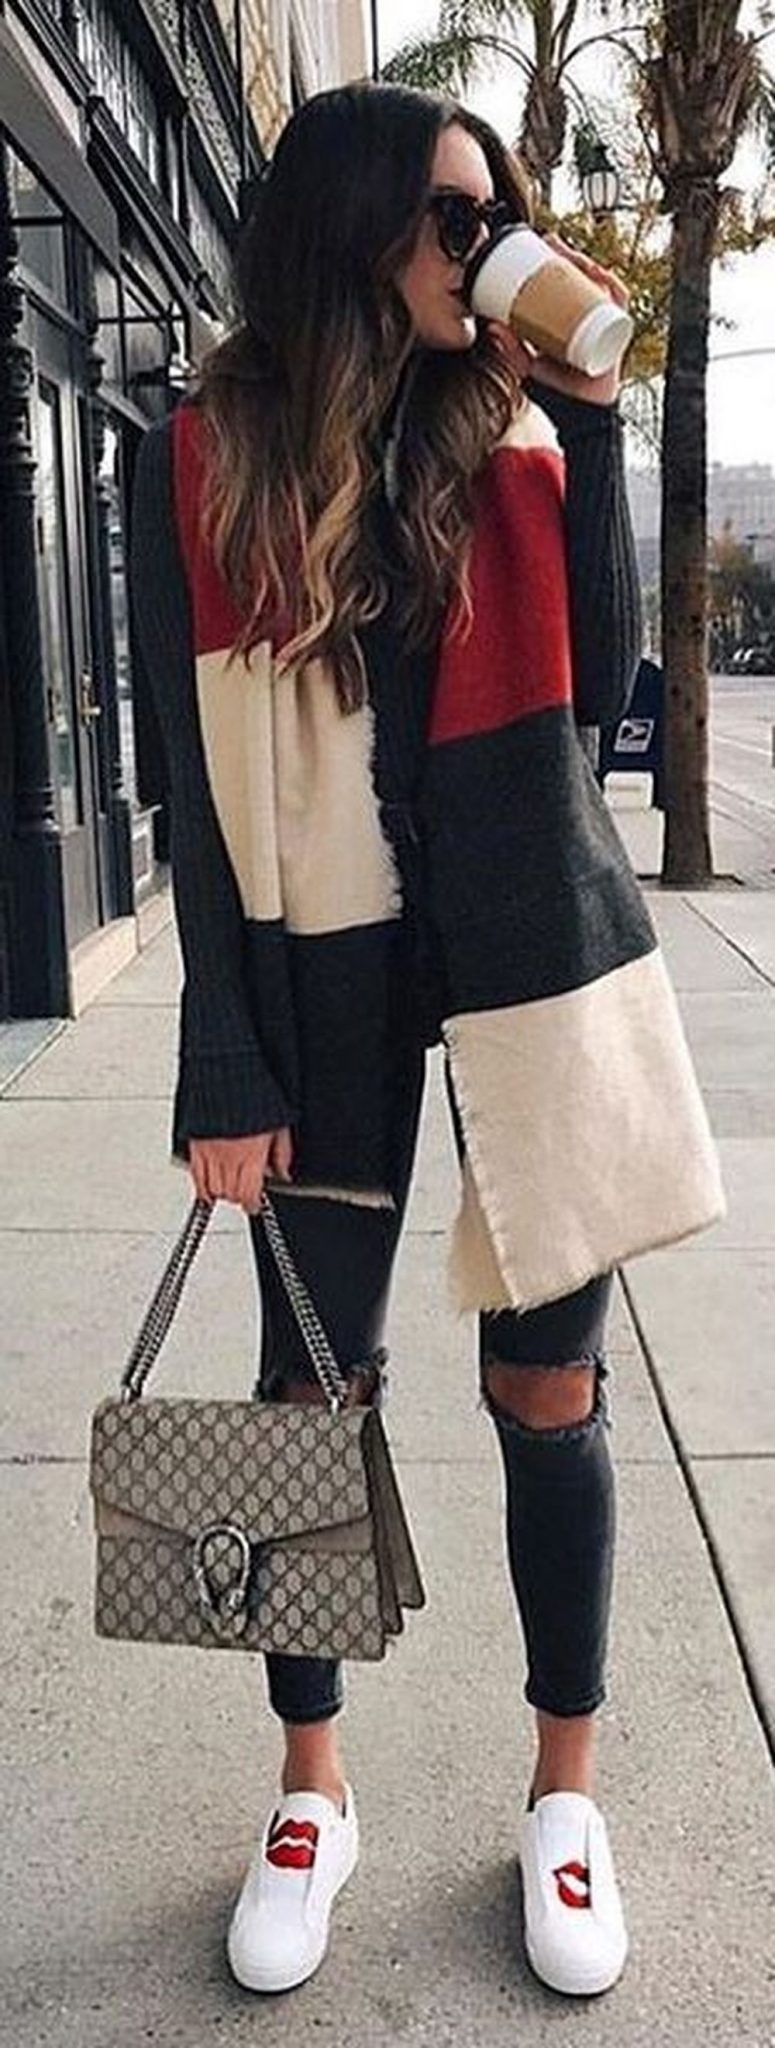 Fashionable scarves for winter outfits 45